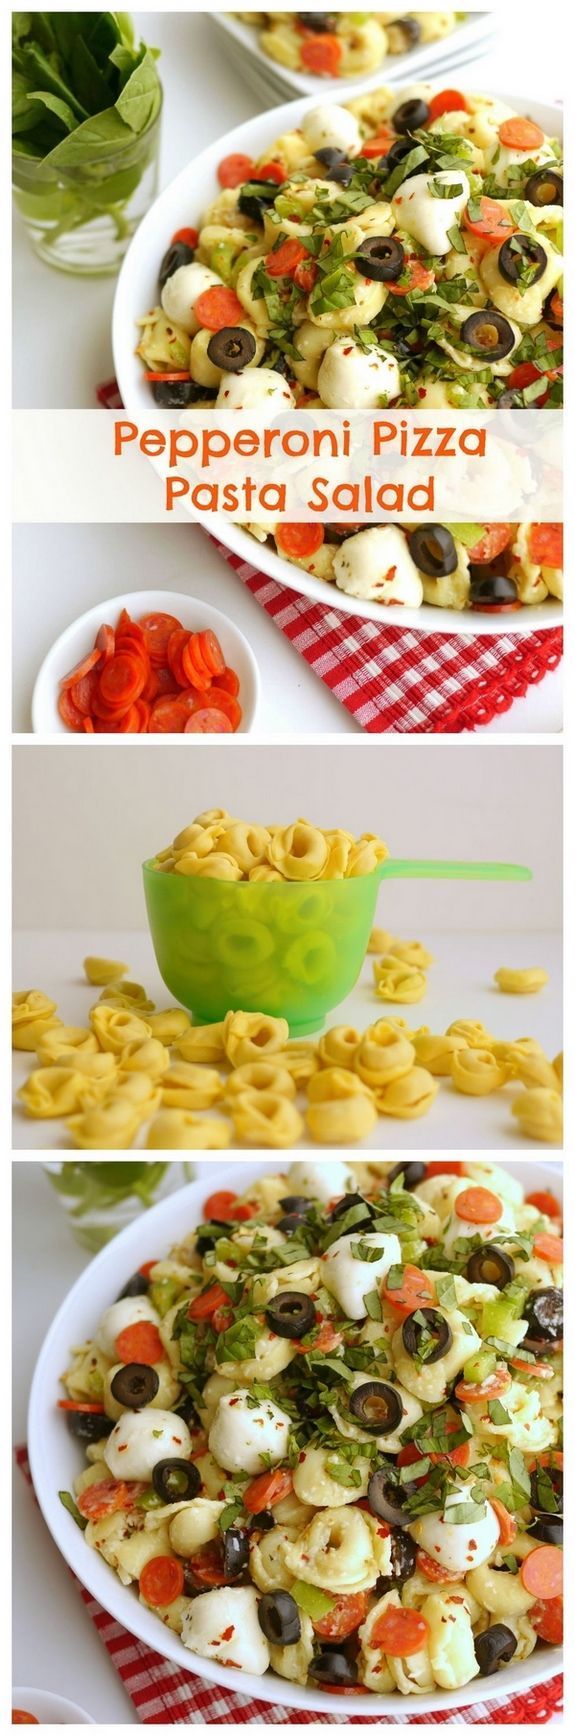 VIDEO + Recipe for Pepperoni Pizza Pasta Salad is a great side dish for a potluck or any other gathering you can think of from NoblePig.com.